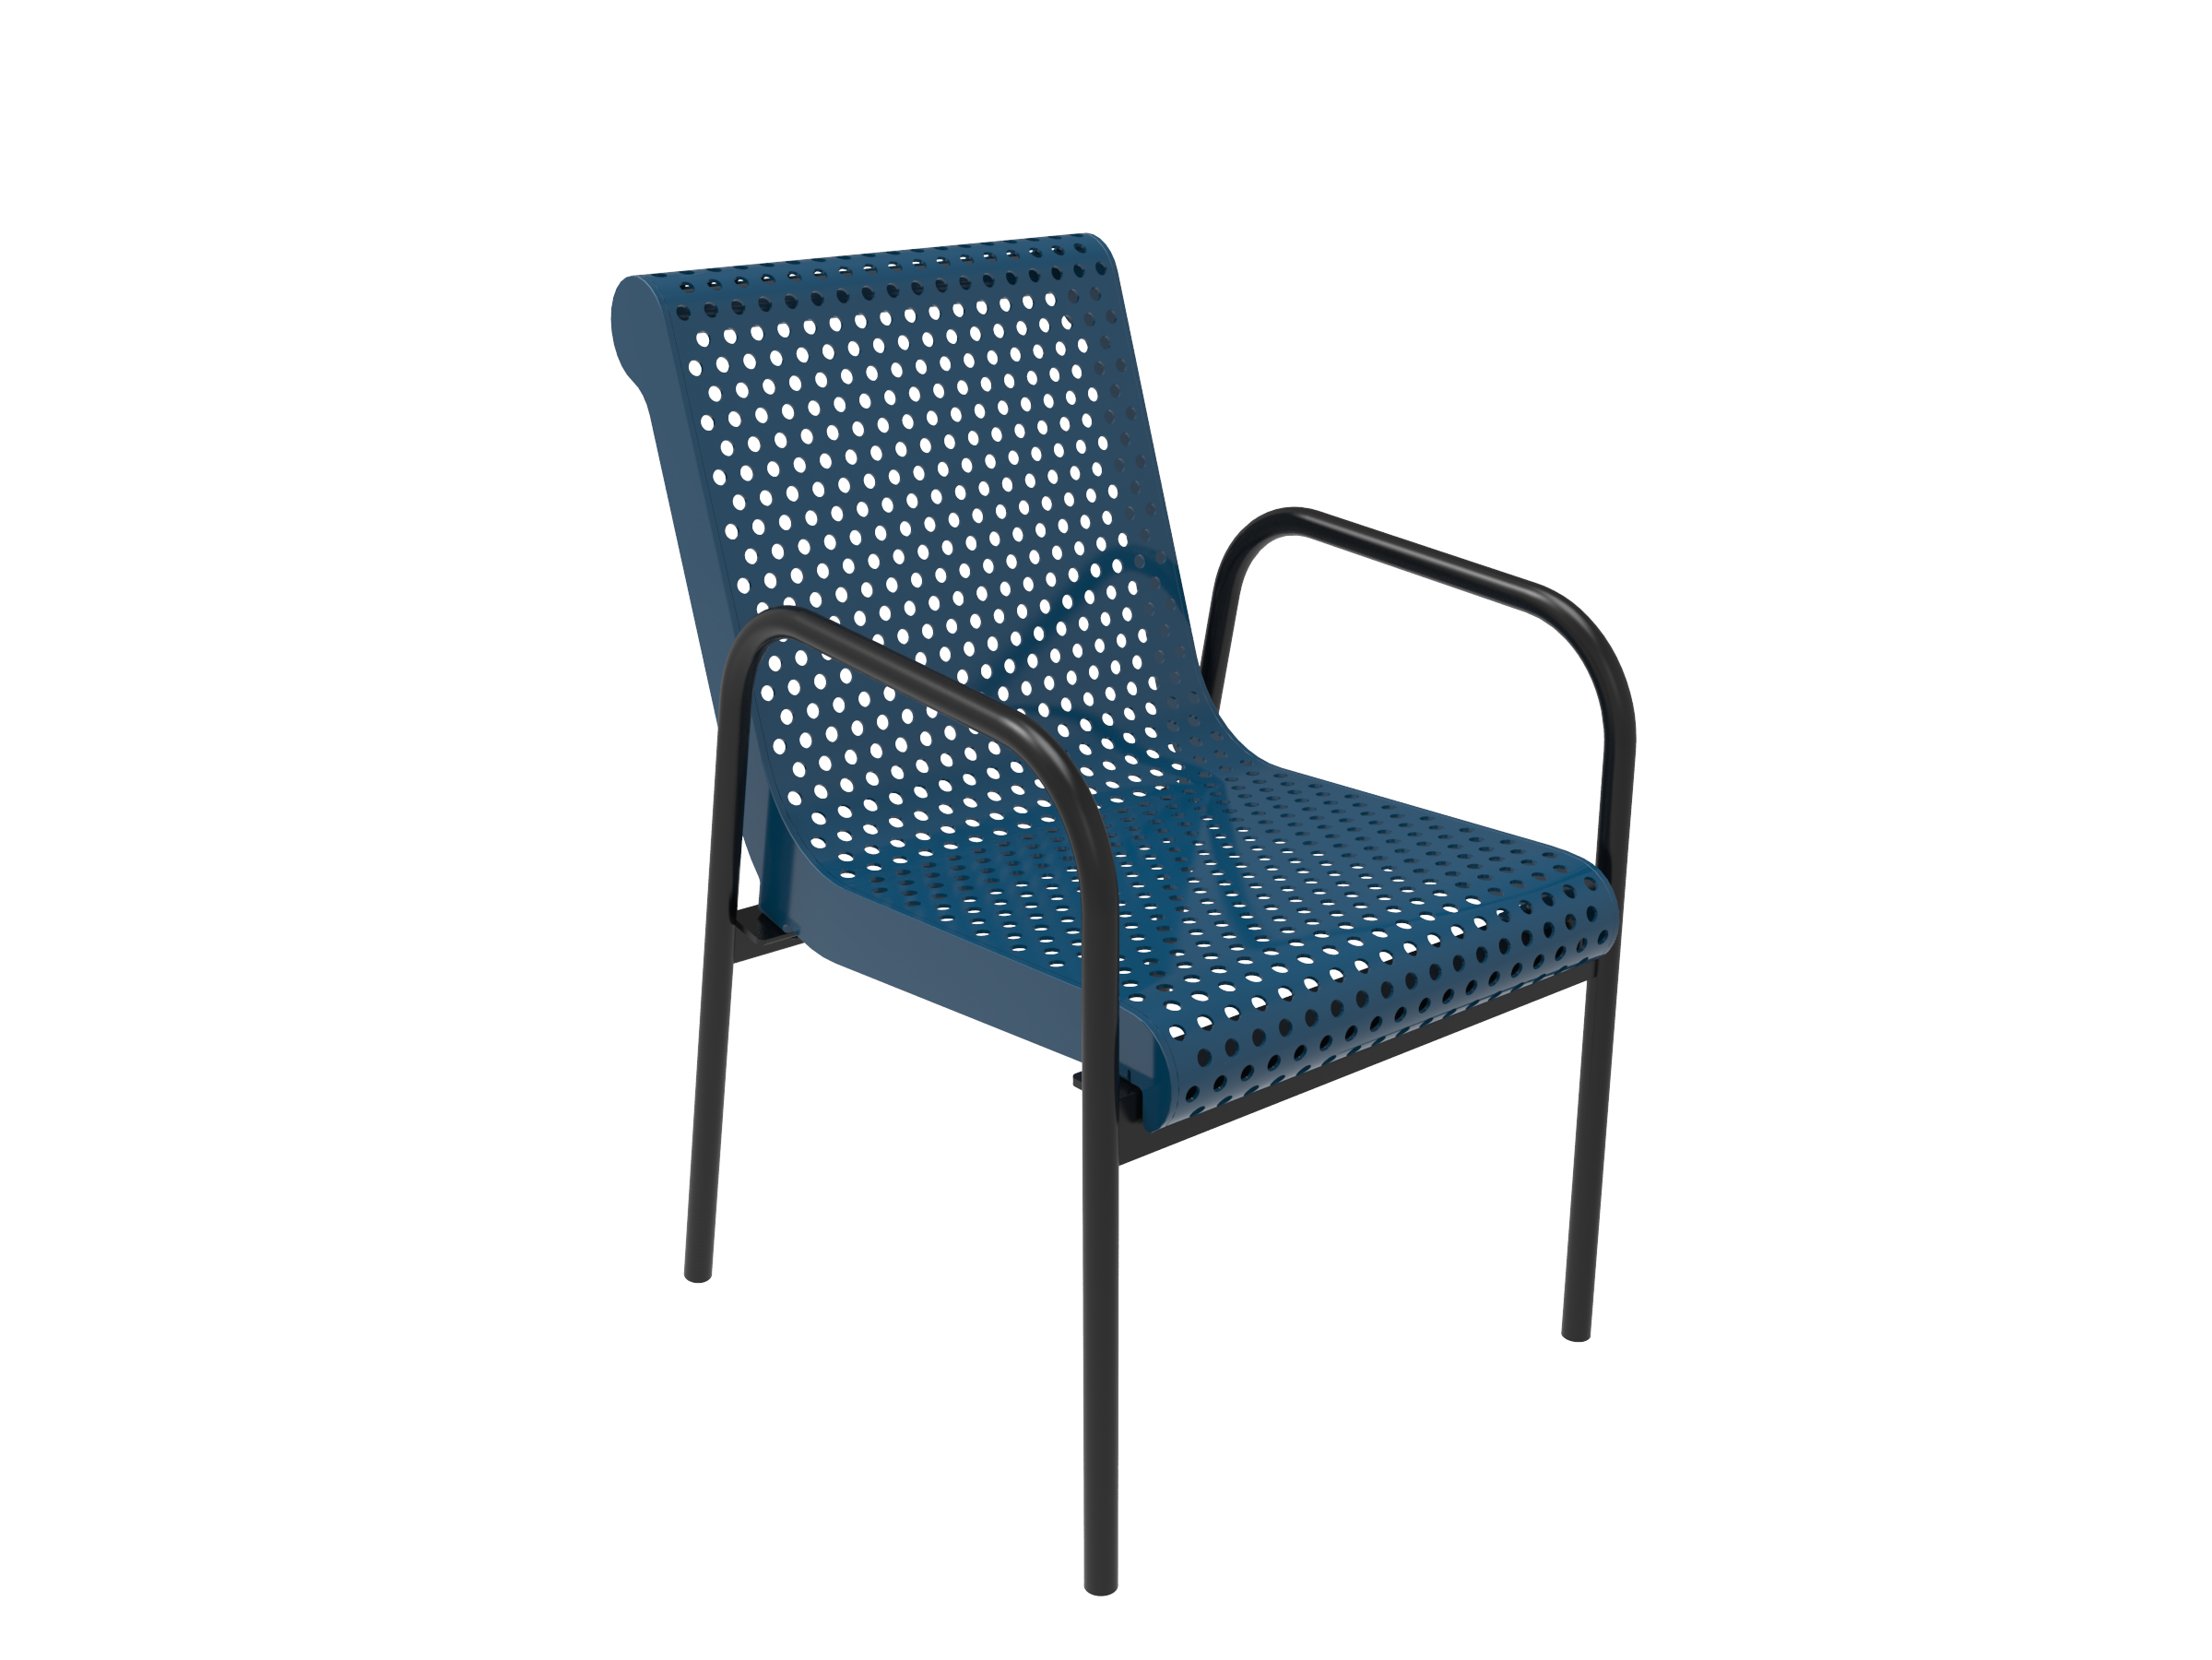 Rivendale Stacking Chair - Perforated Steel